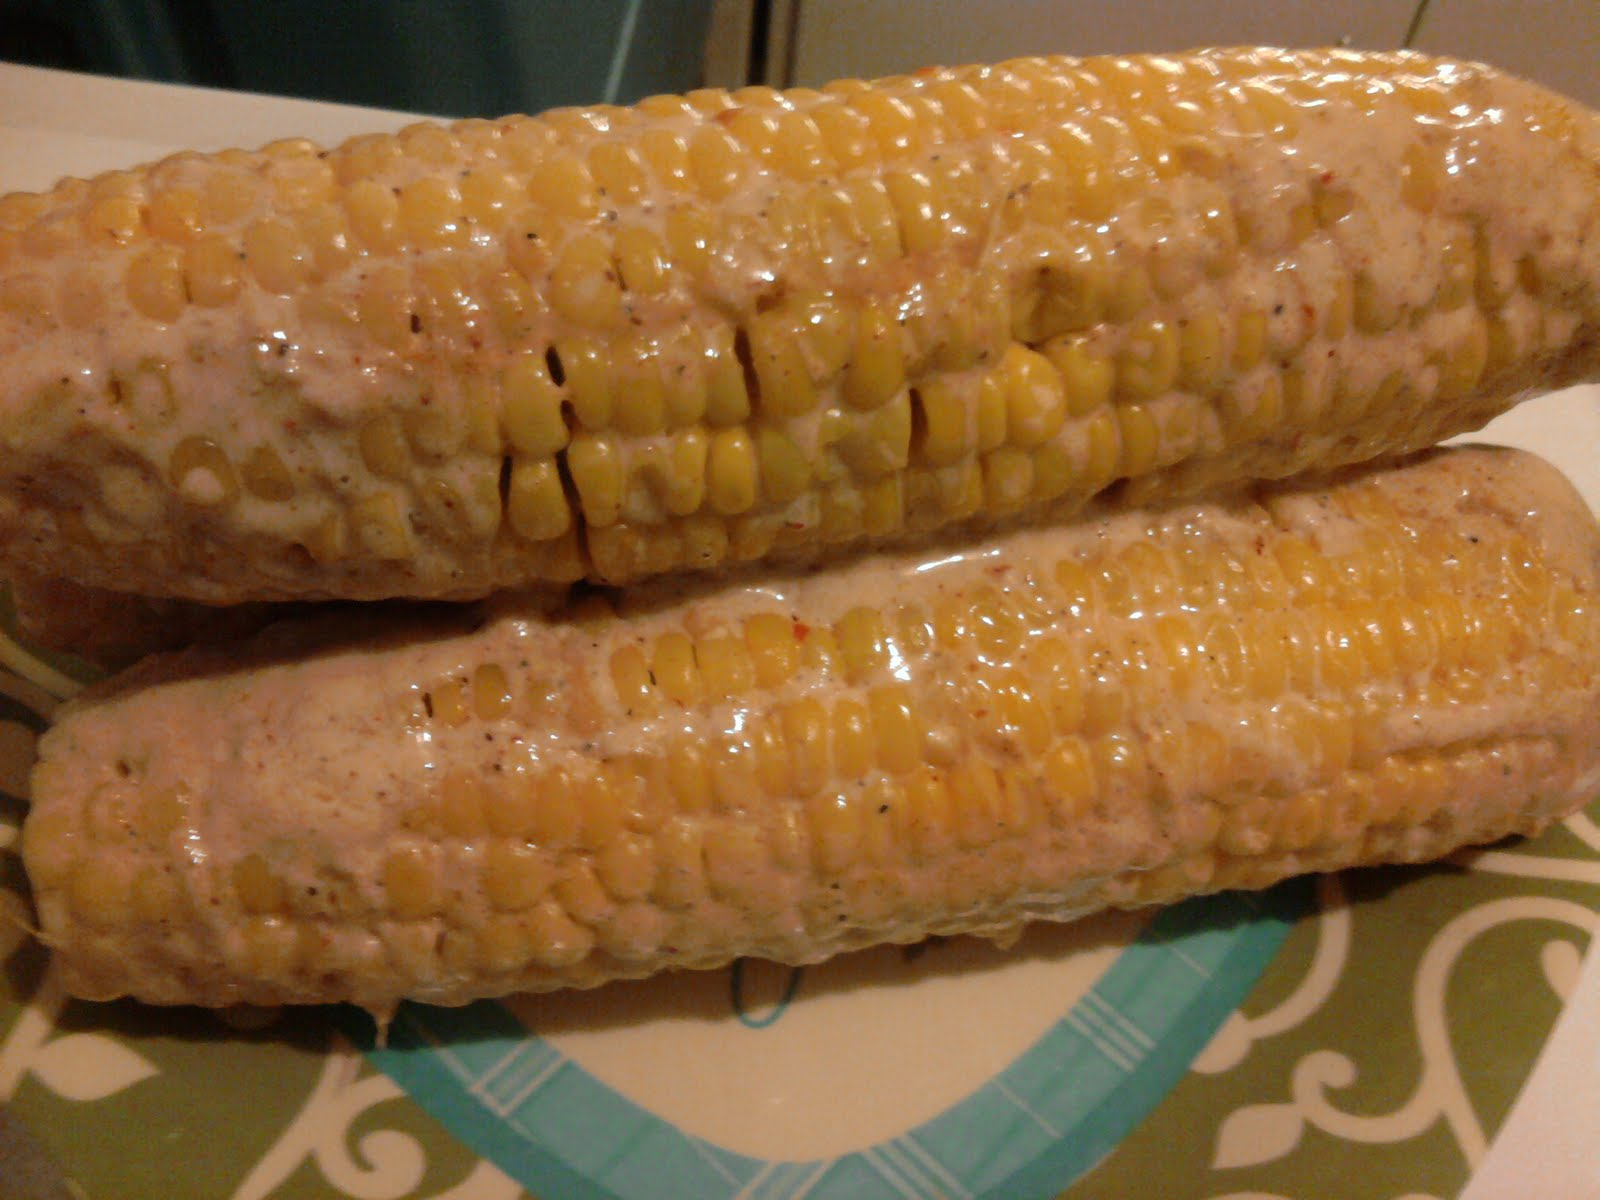 ... Labor Day weekend treats... Oven Roasted Corn in Chile Coconut Milk